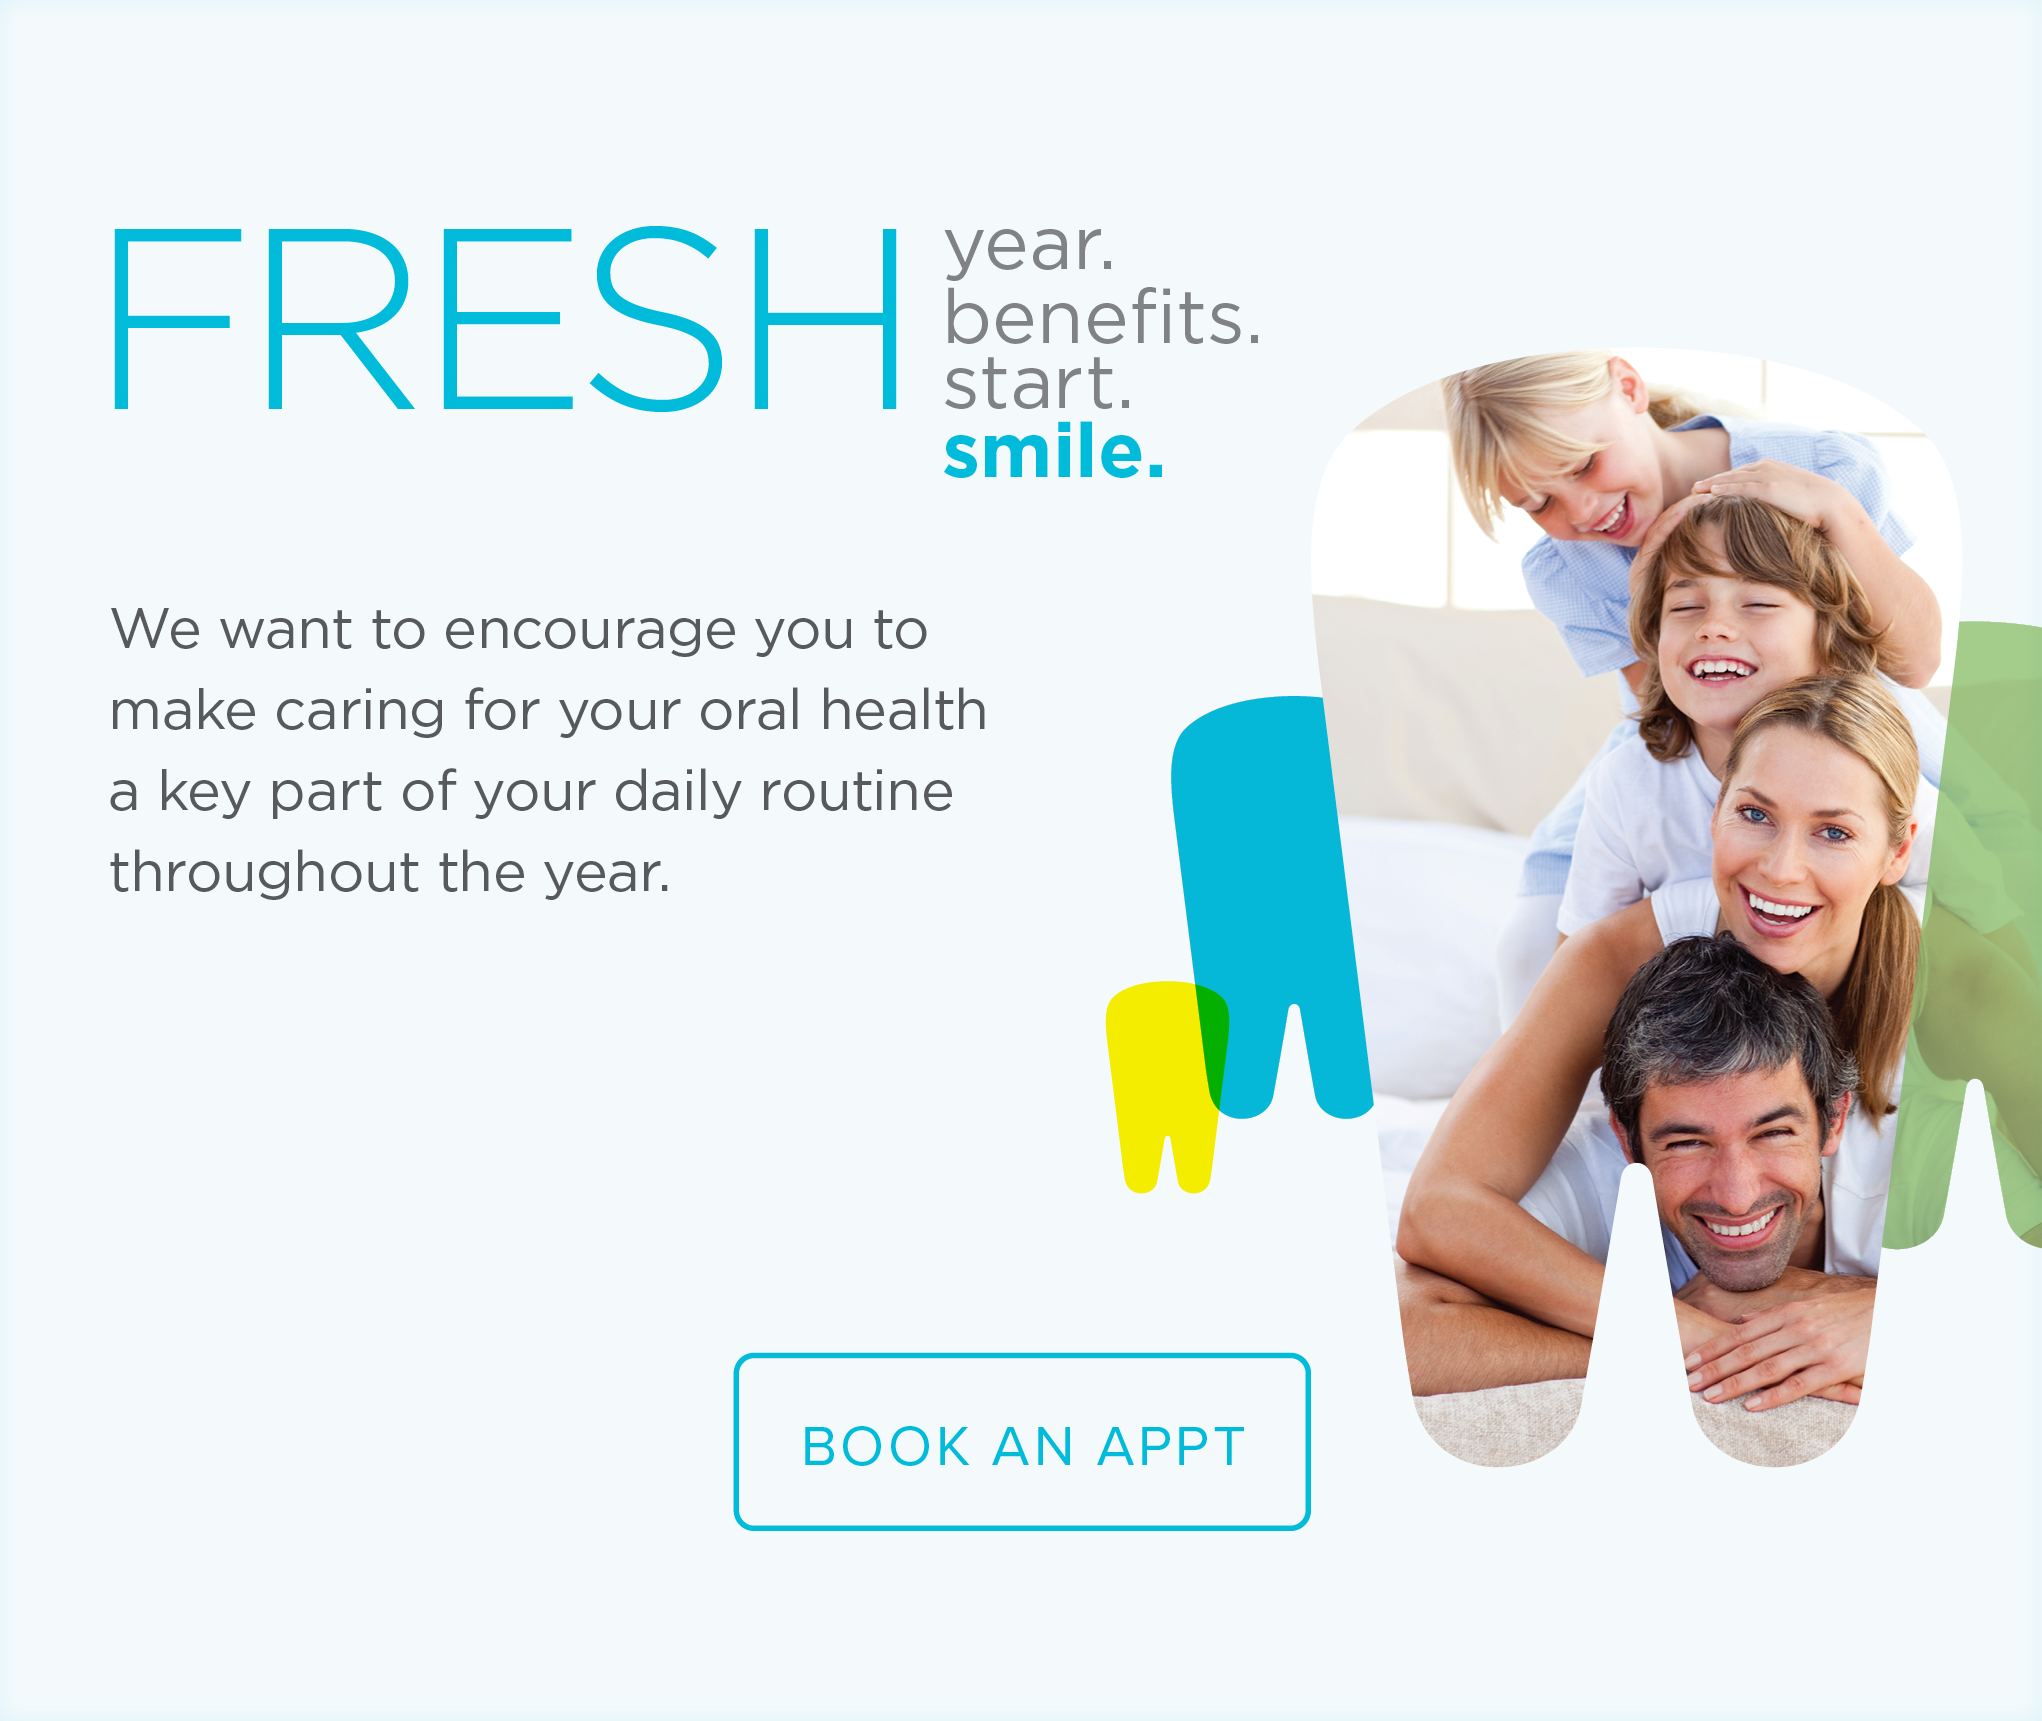 Acworth Smiles Dentistry - Make the Most of Your Benefits